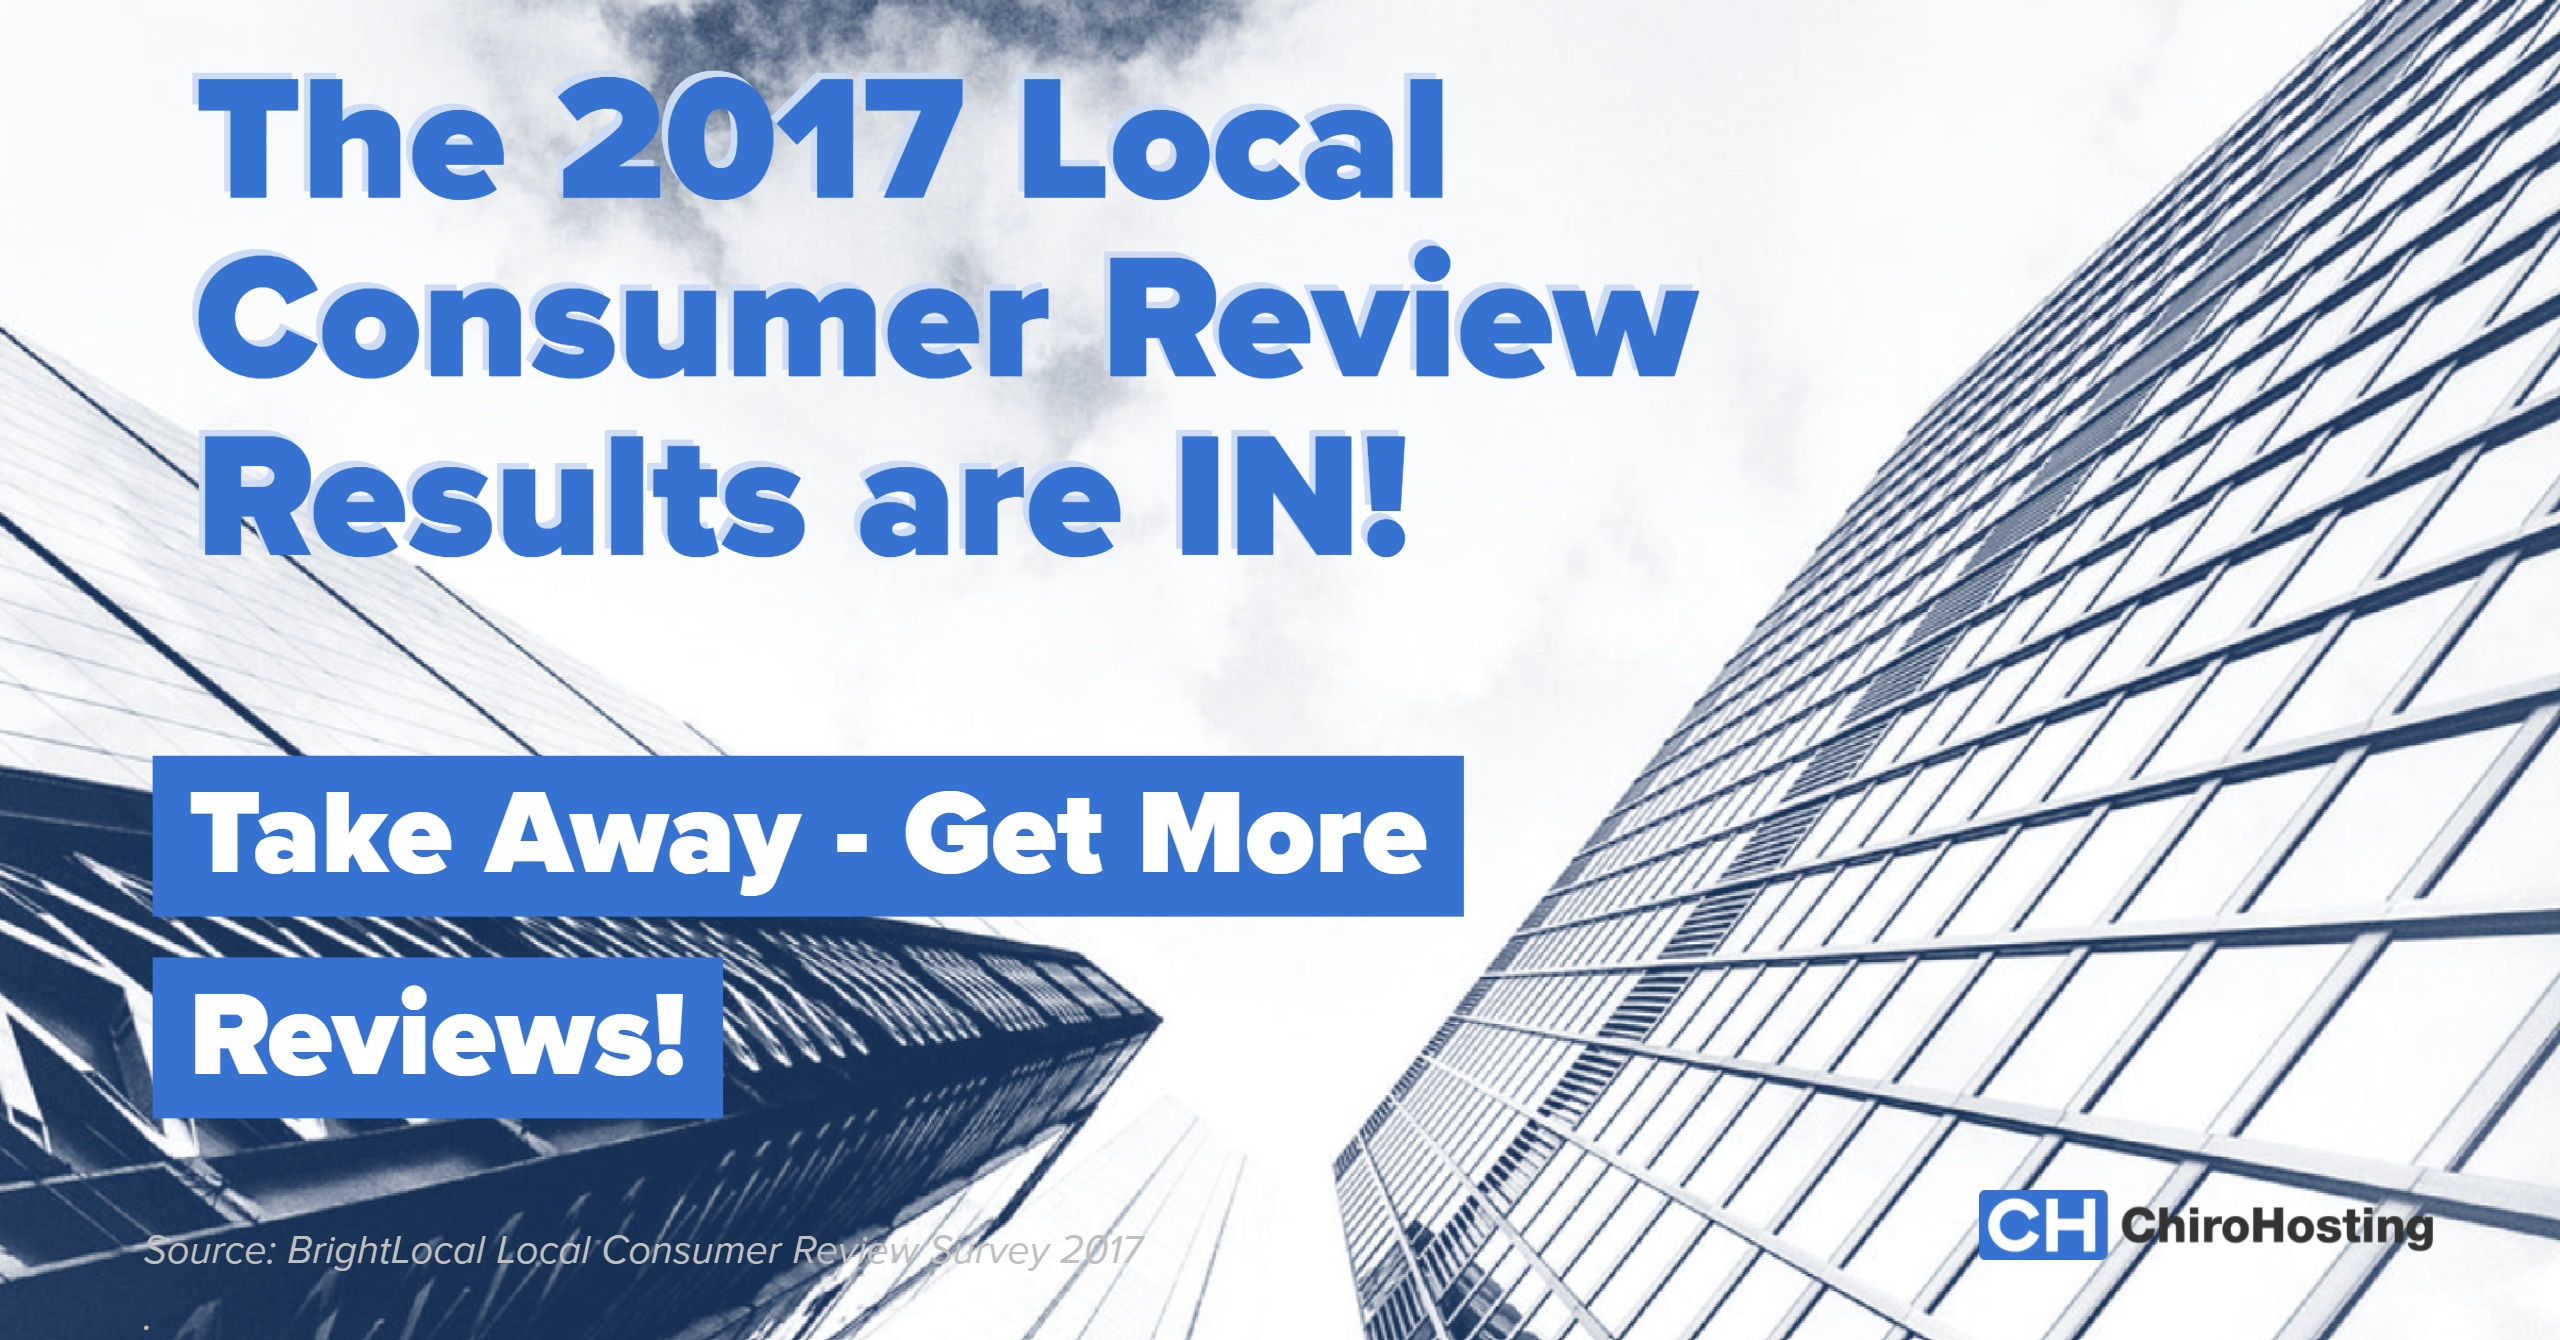 Win in Local Search! The 2017 Survey Results are In...